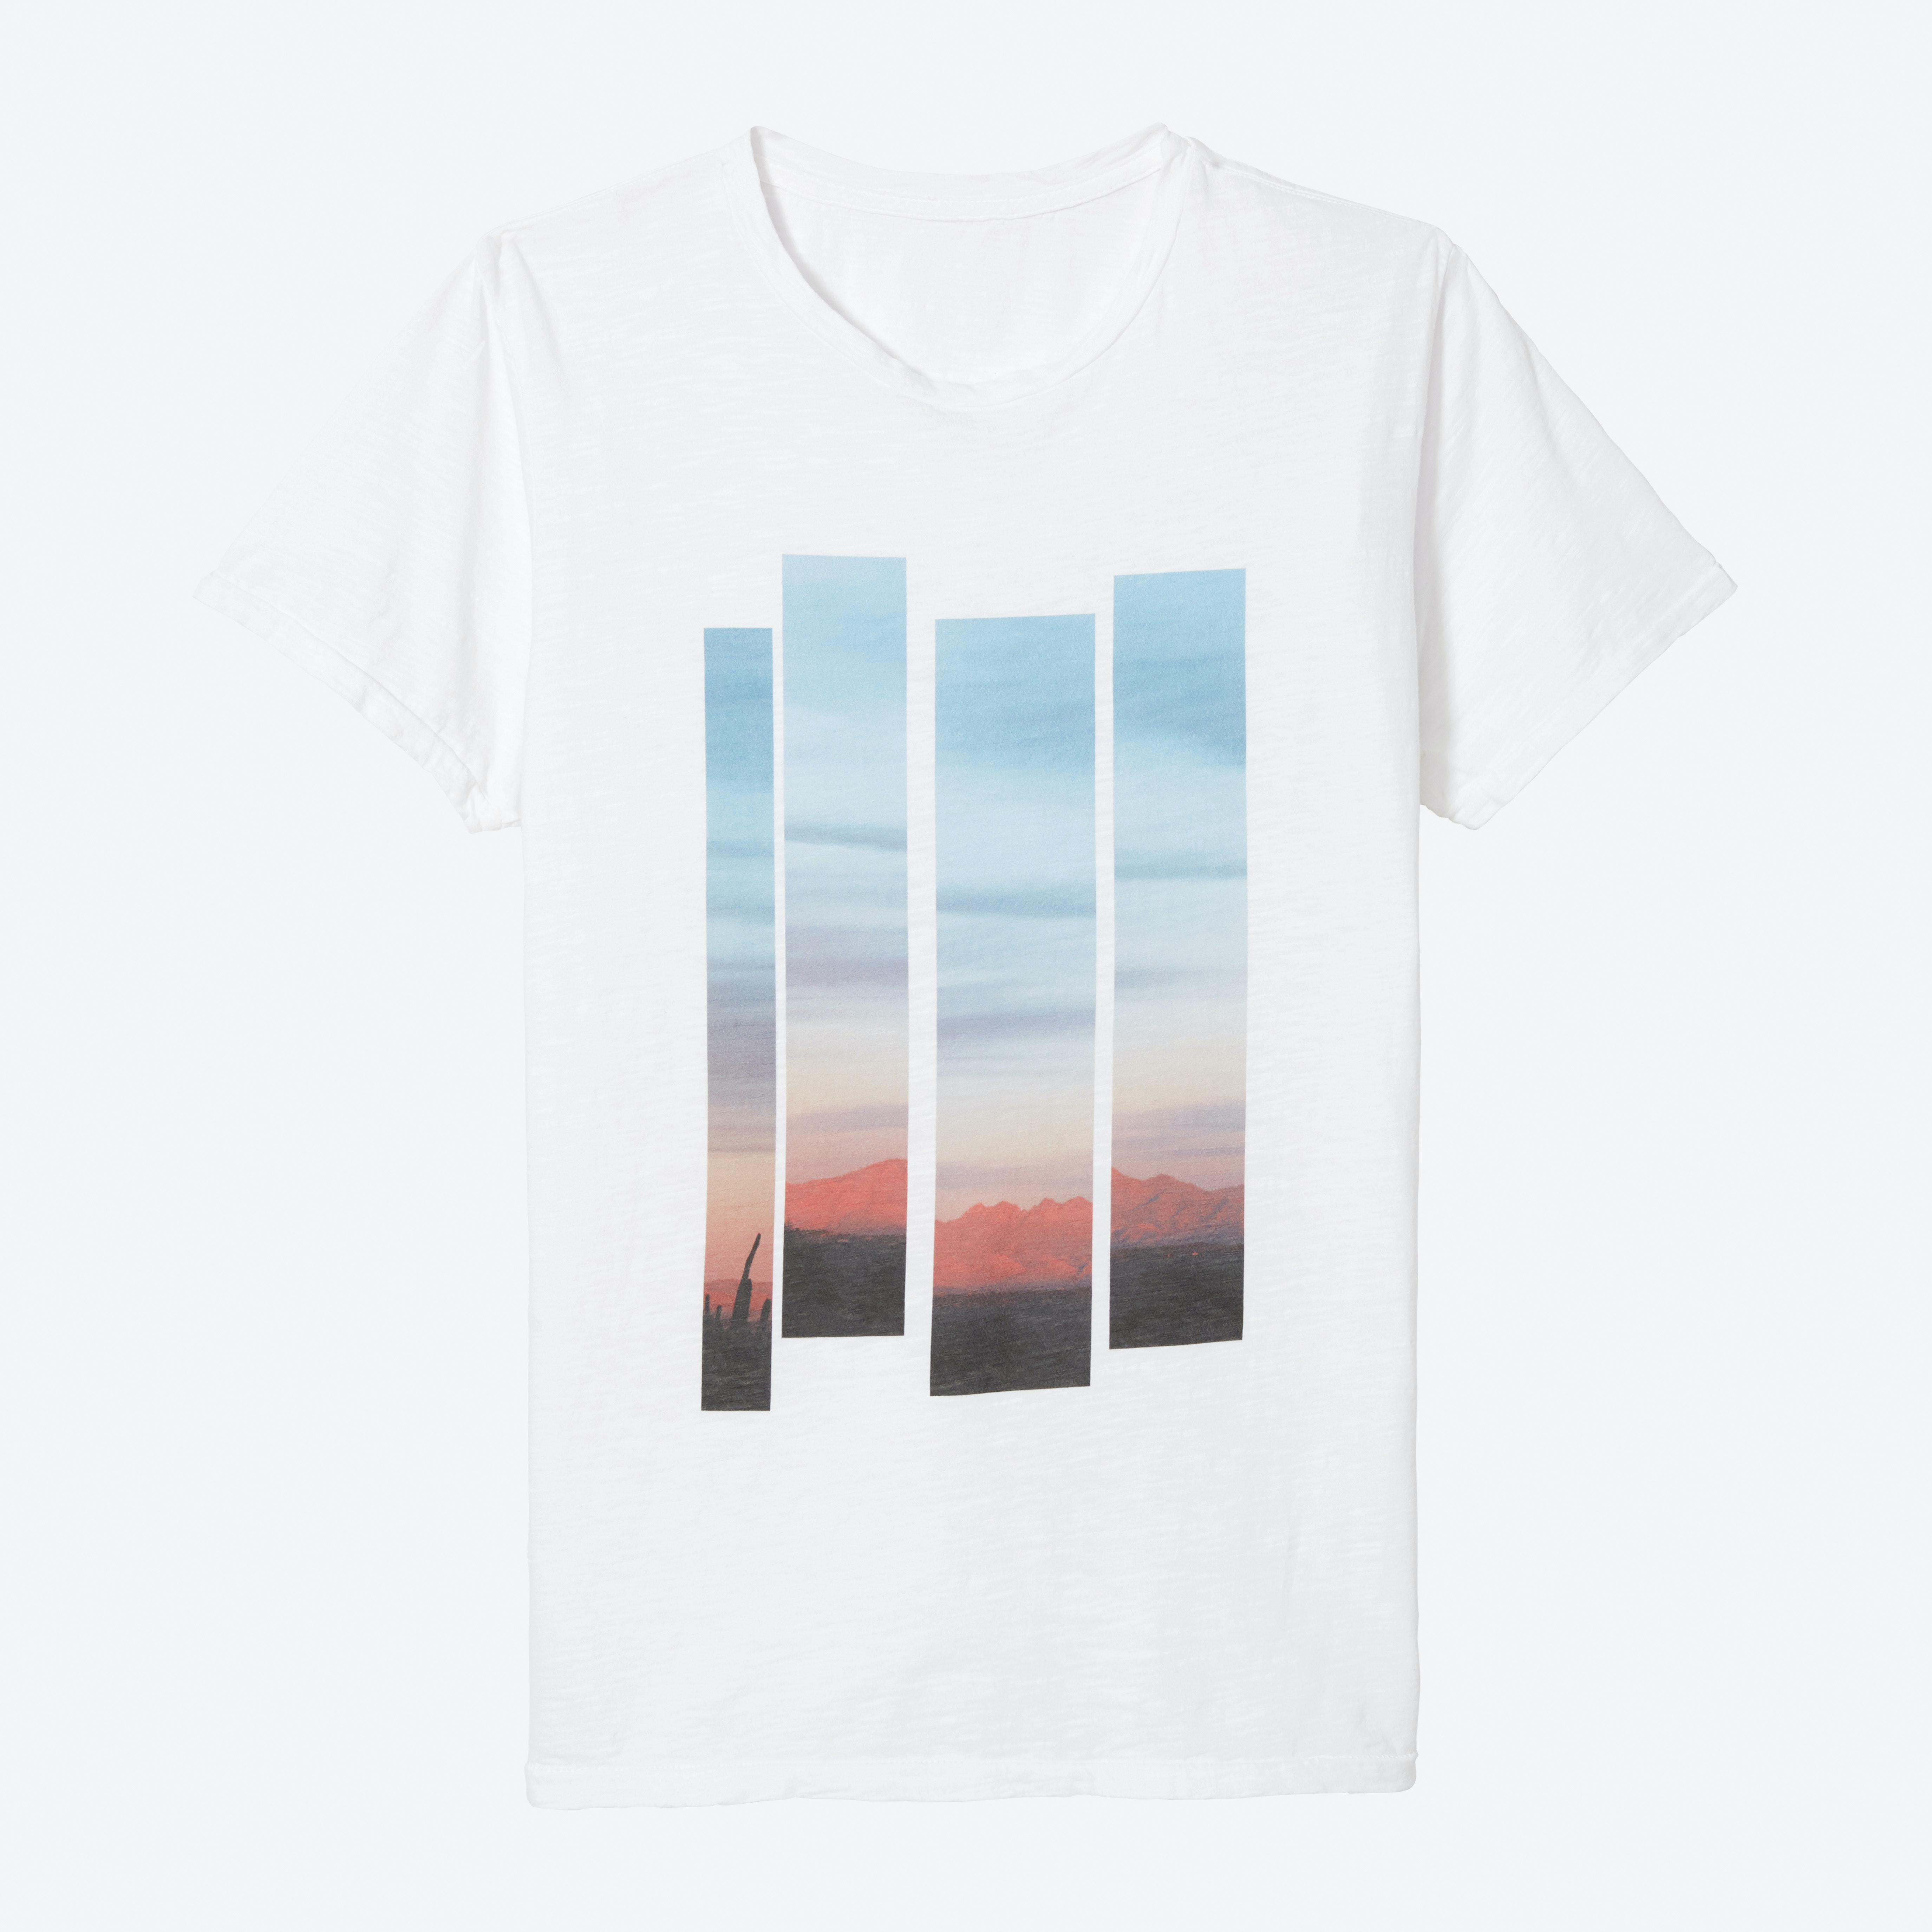 Limited Edition Graphic Tee